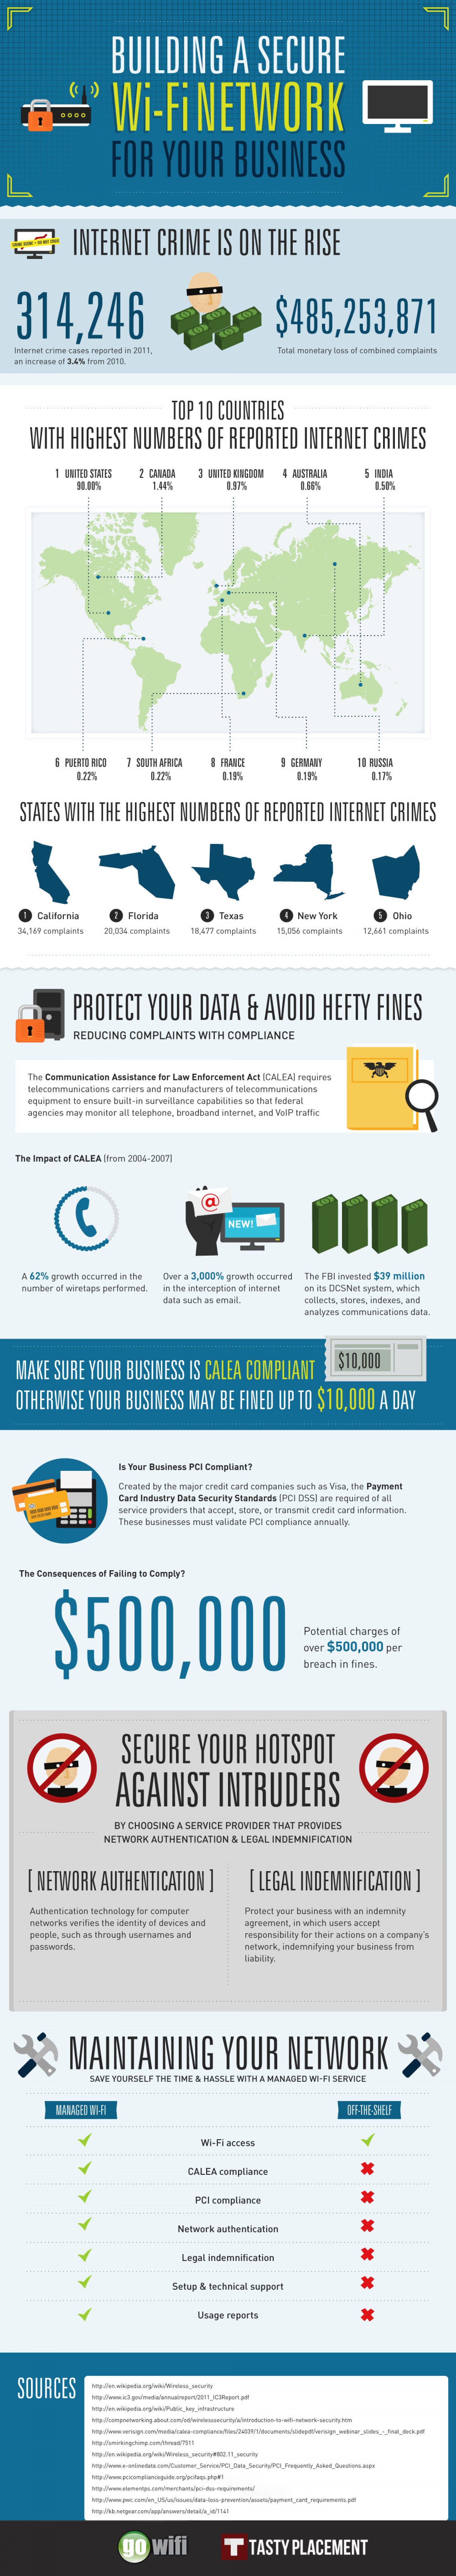 Building A Secure Wi-Fi Network For Your Business Infographic